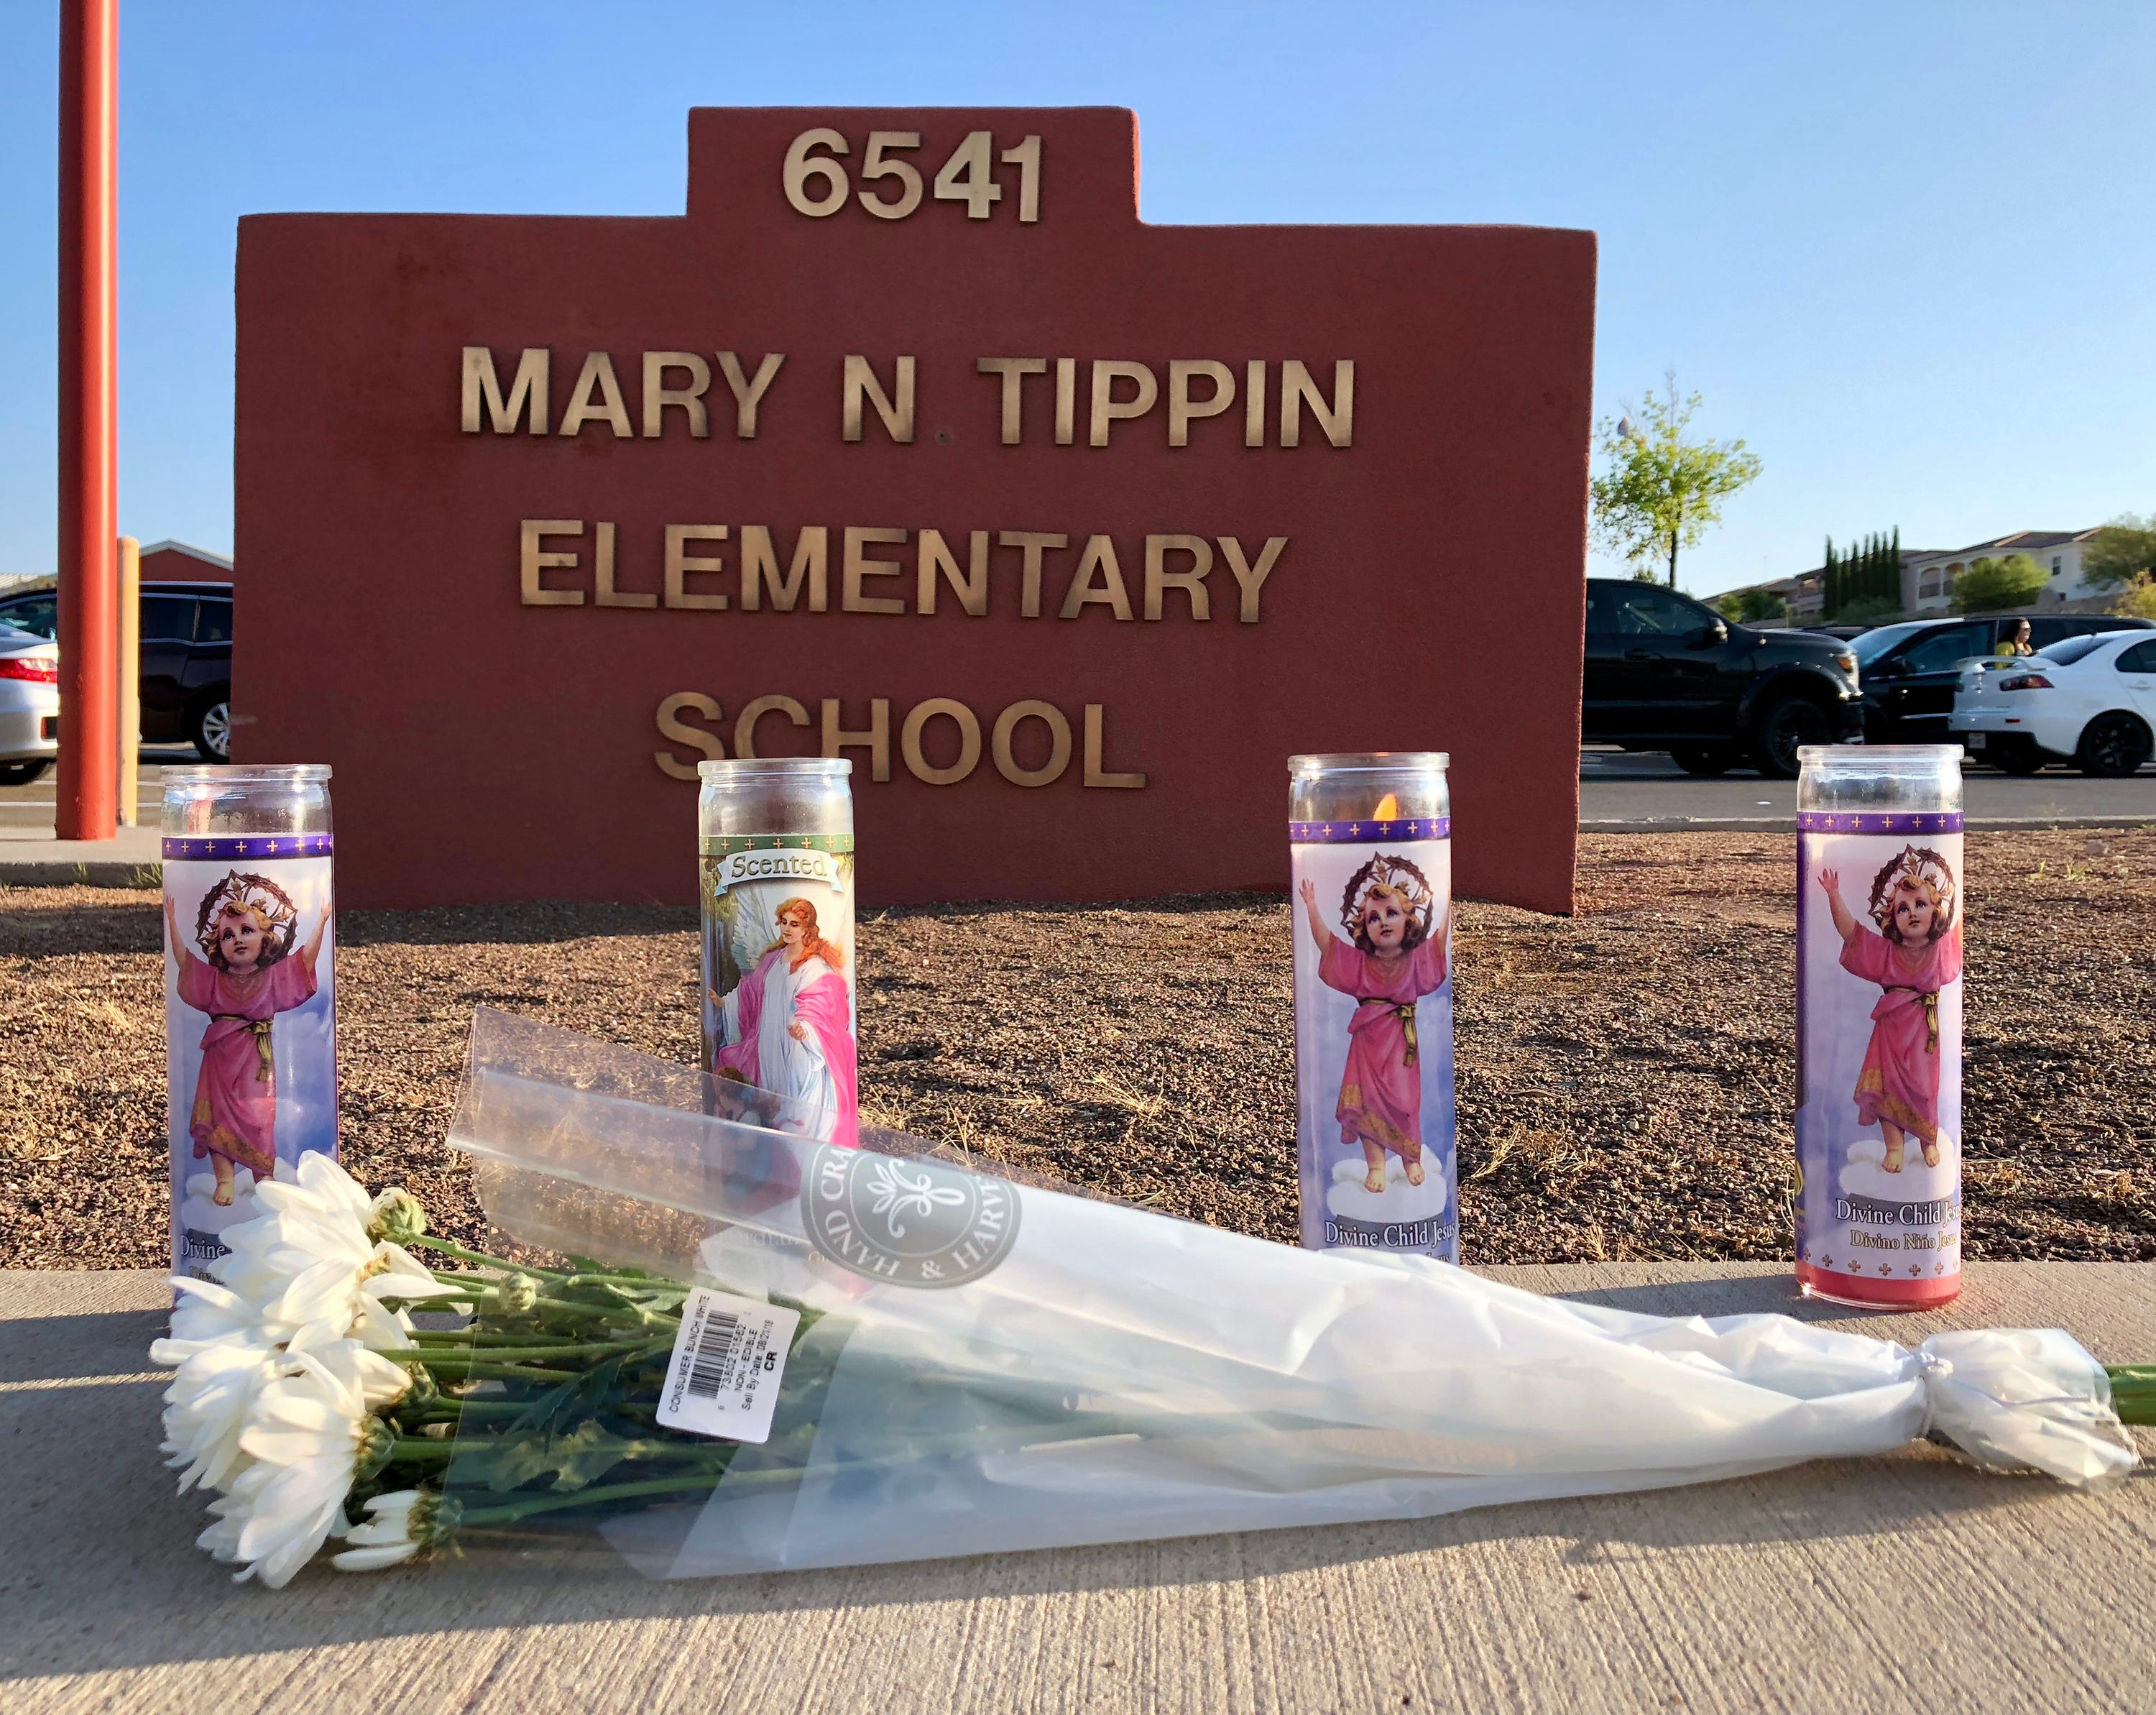 EPISD counselors help 125 children, adults after Tippin Elementary accident left mom dead | El Paso Times